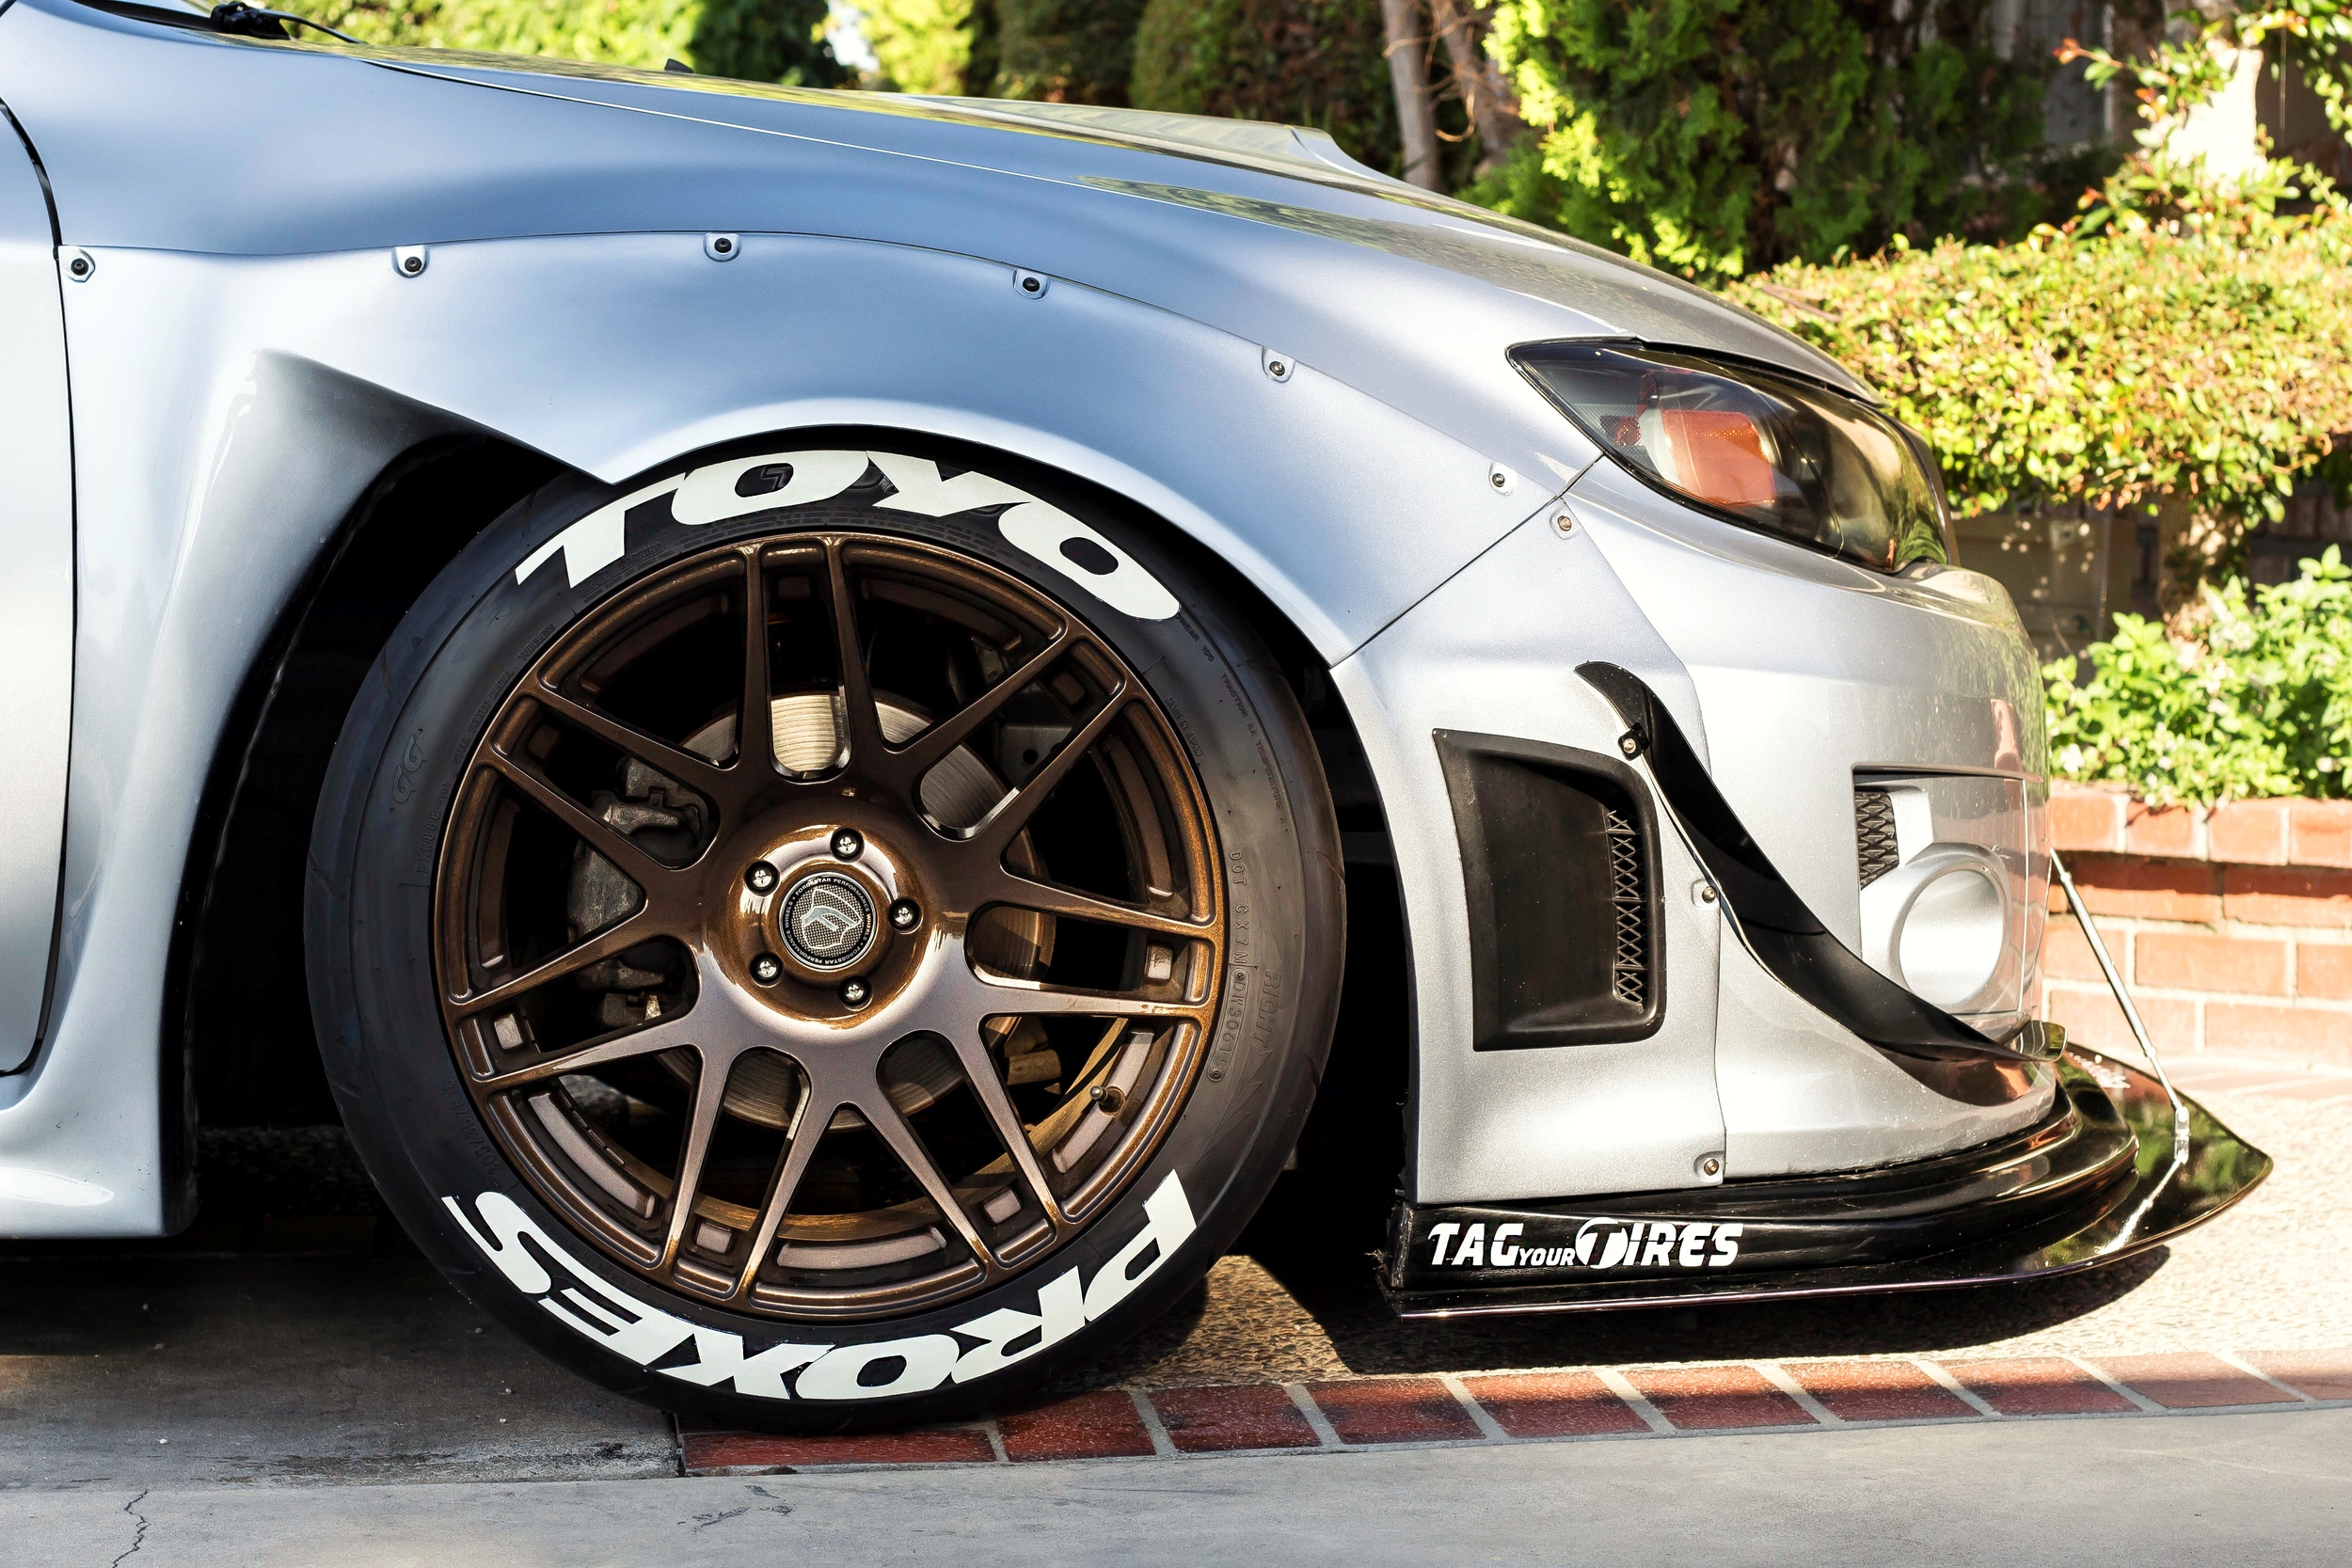 Tag Your Tires